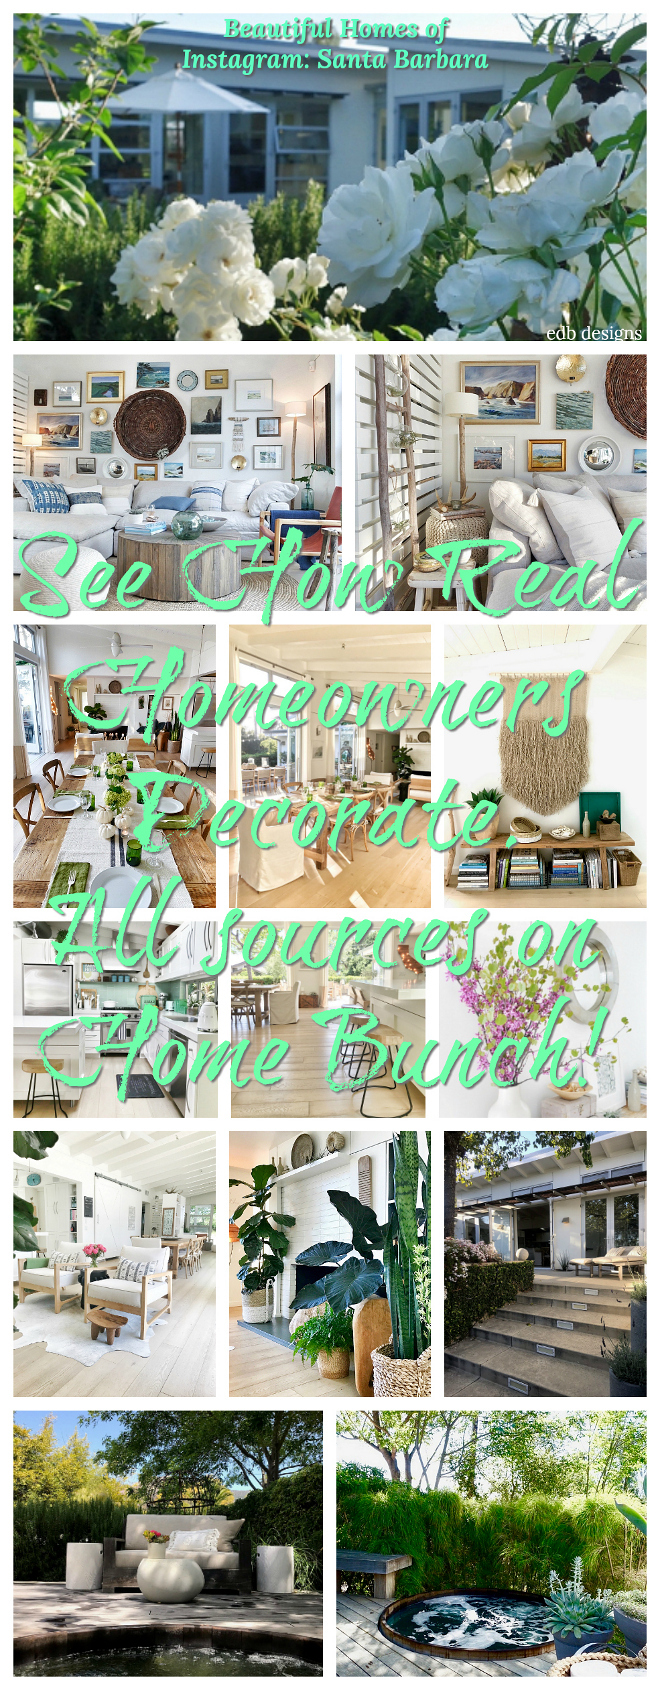 Beautiful Homes of Instagram Santa Barbara Home Bunch Blog series